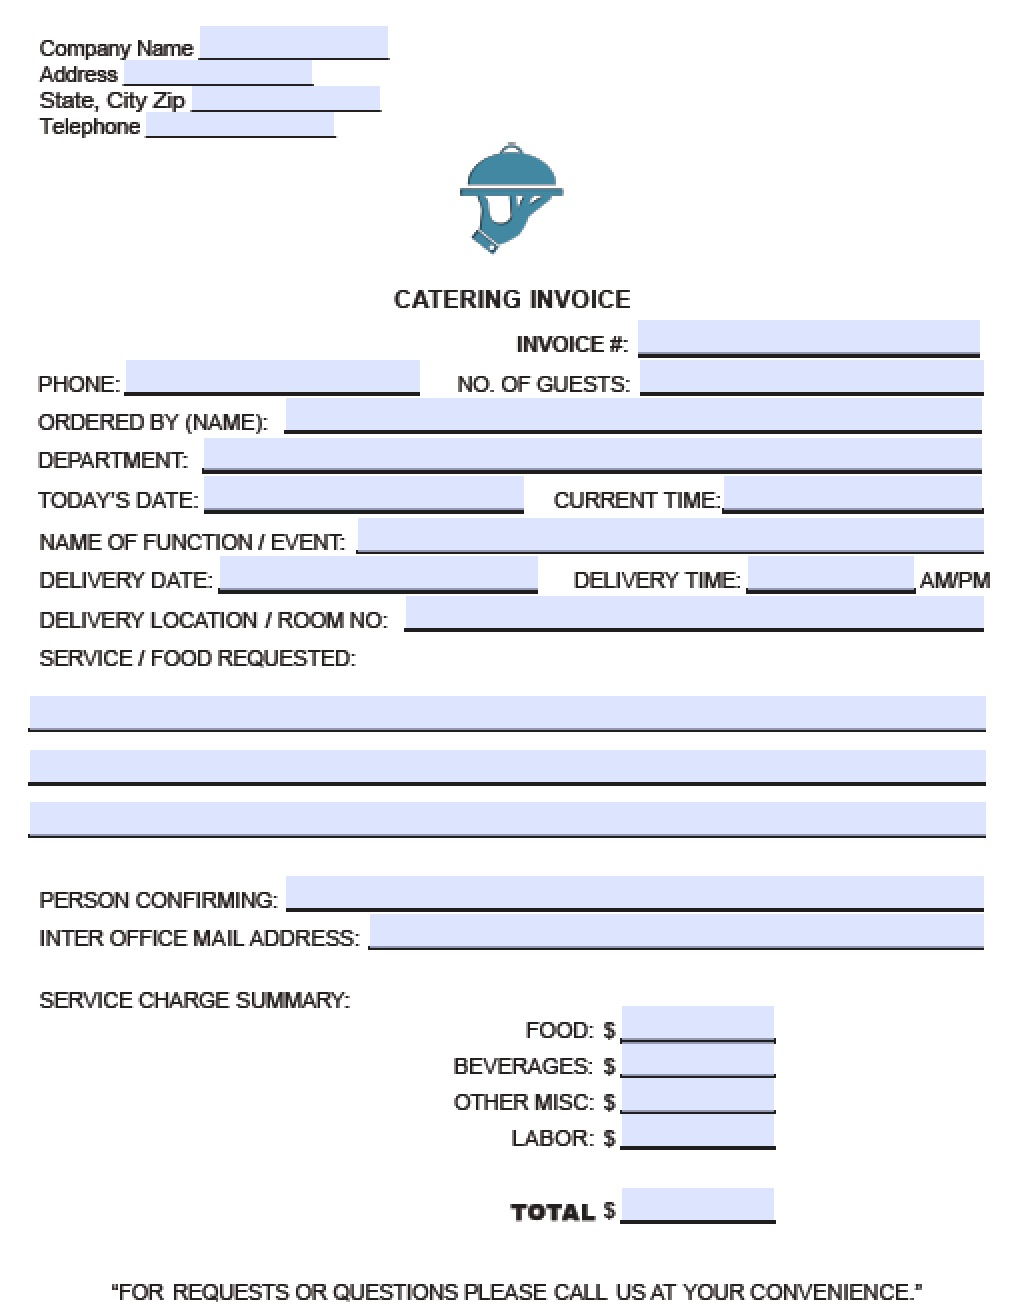 Free Catering Service Invoice Template Excel PDF Word Doc - What is an invoice for for service business